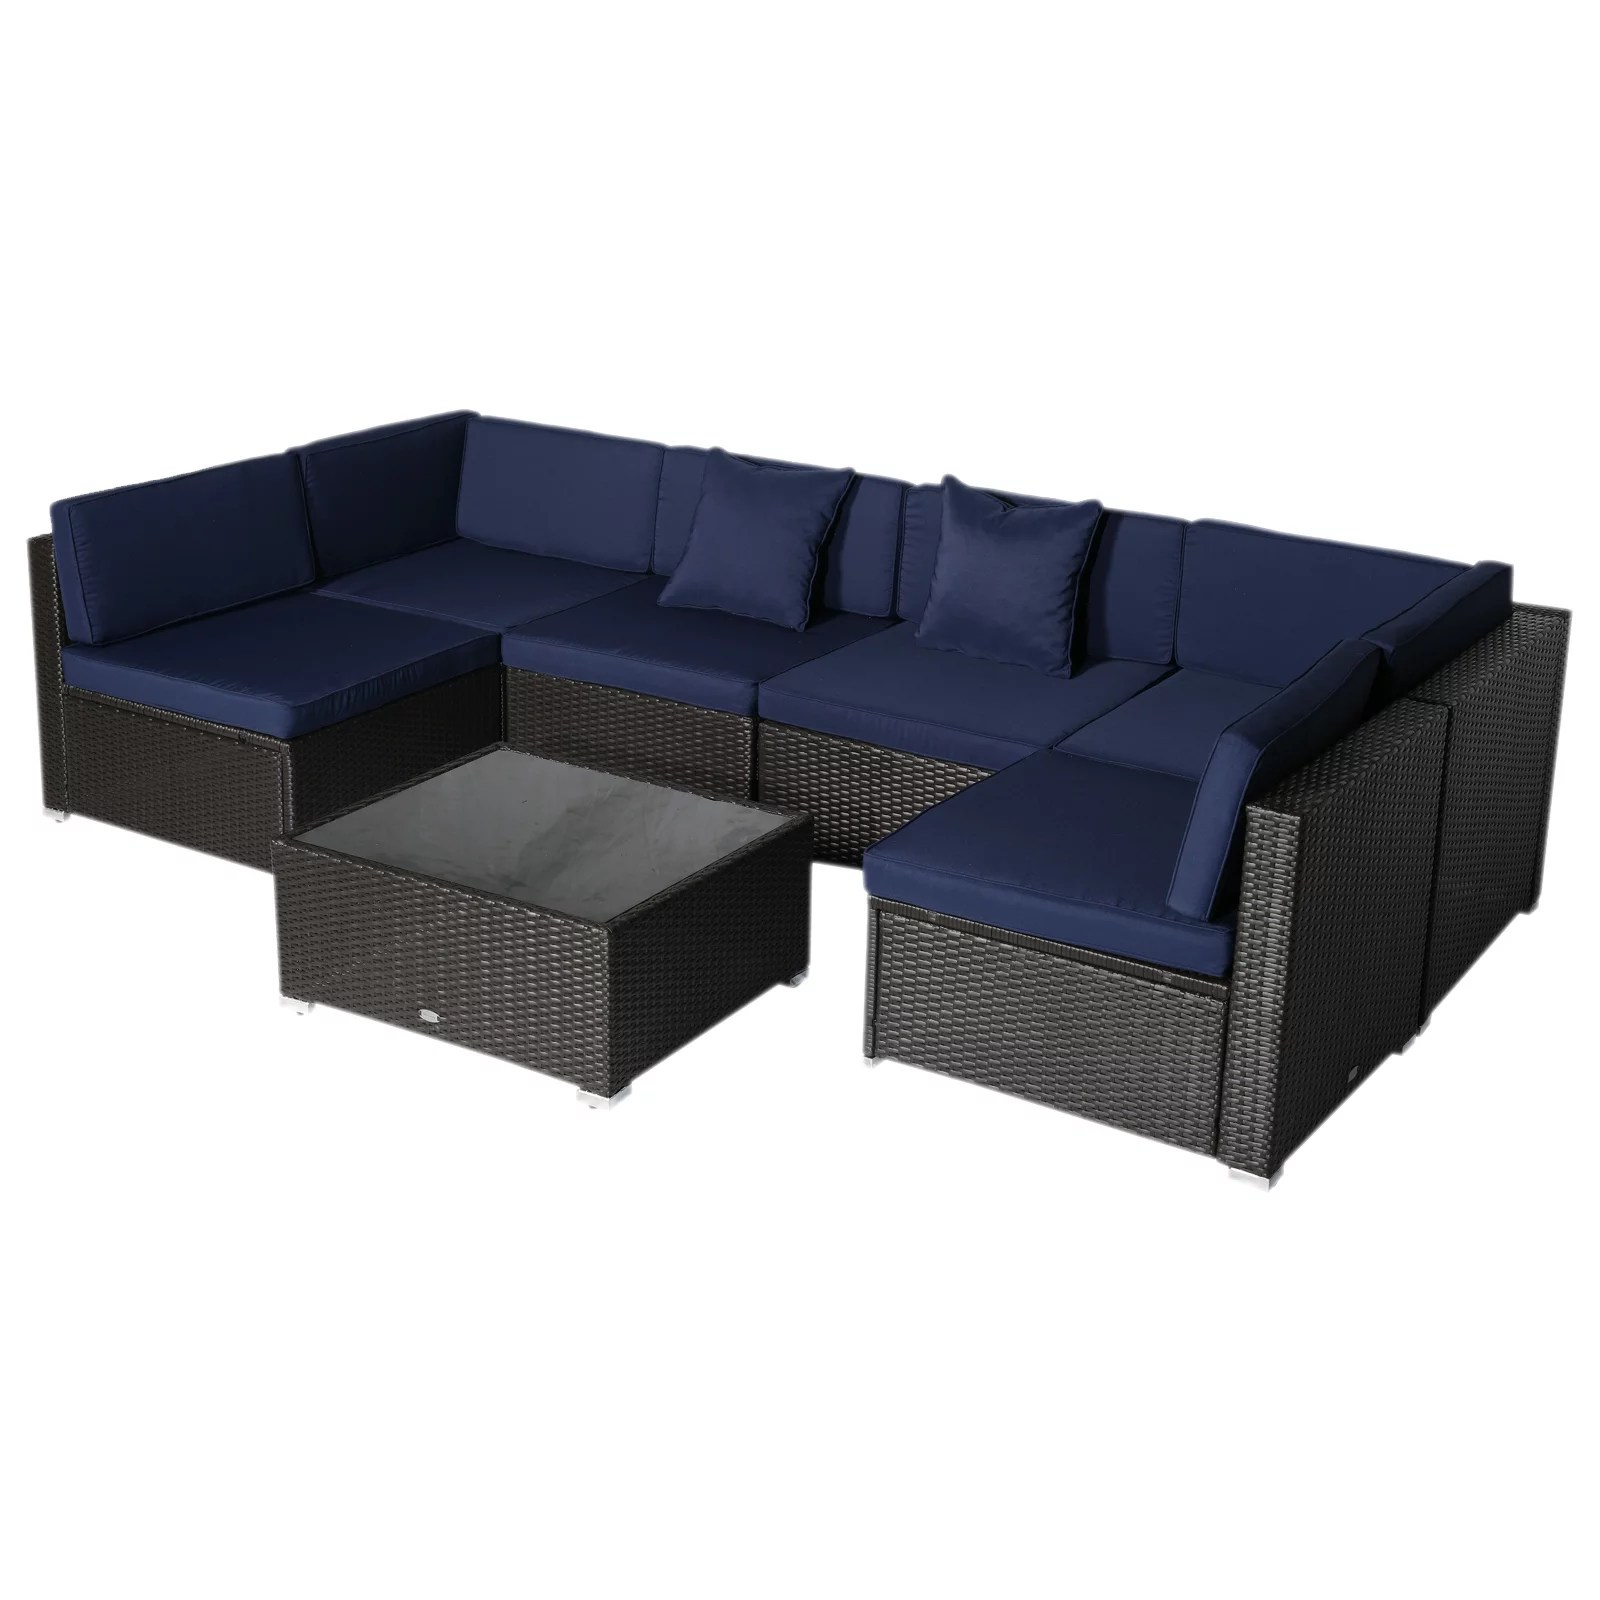 outsunny 7 piece outdoor wicker patio sofa set modern rattan conversation furniture set with cushions pillows and tea table